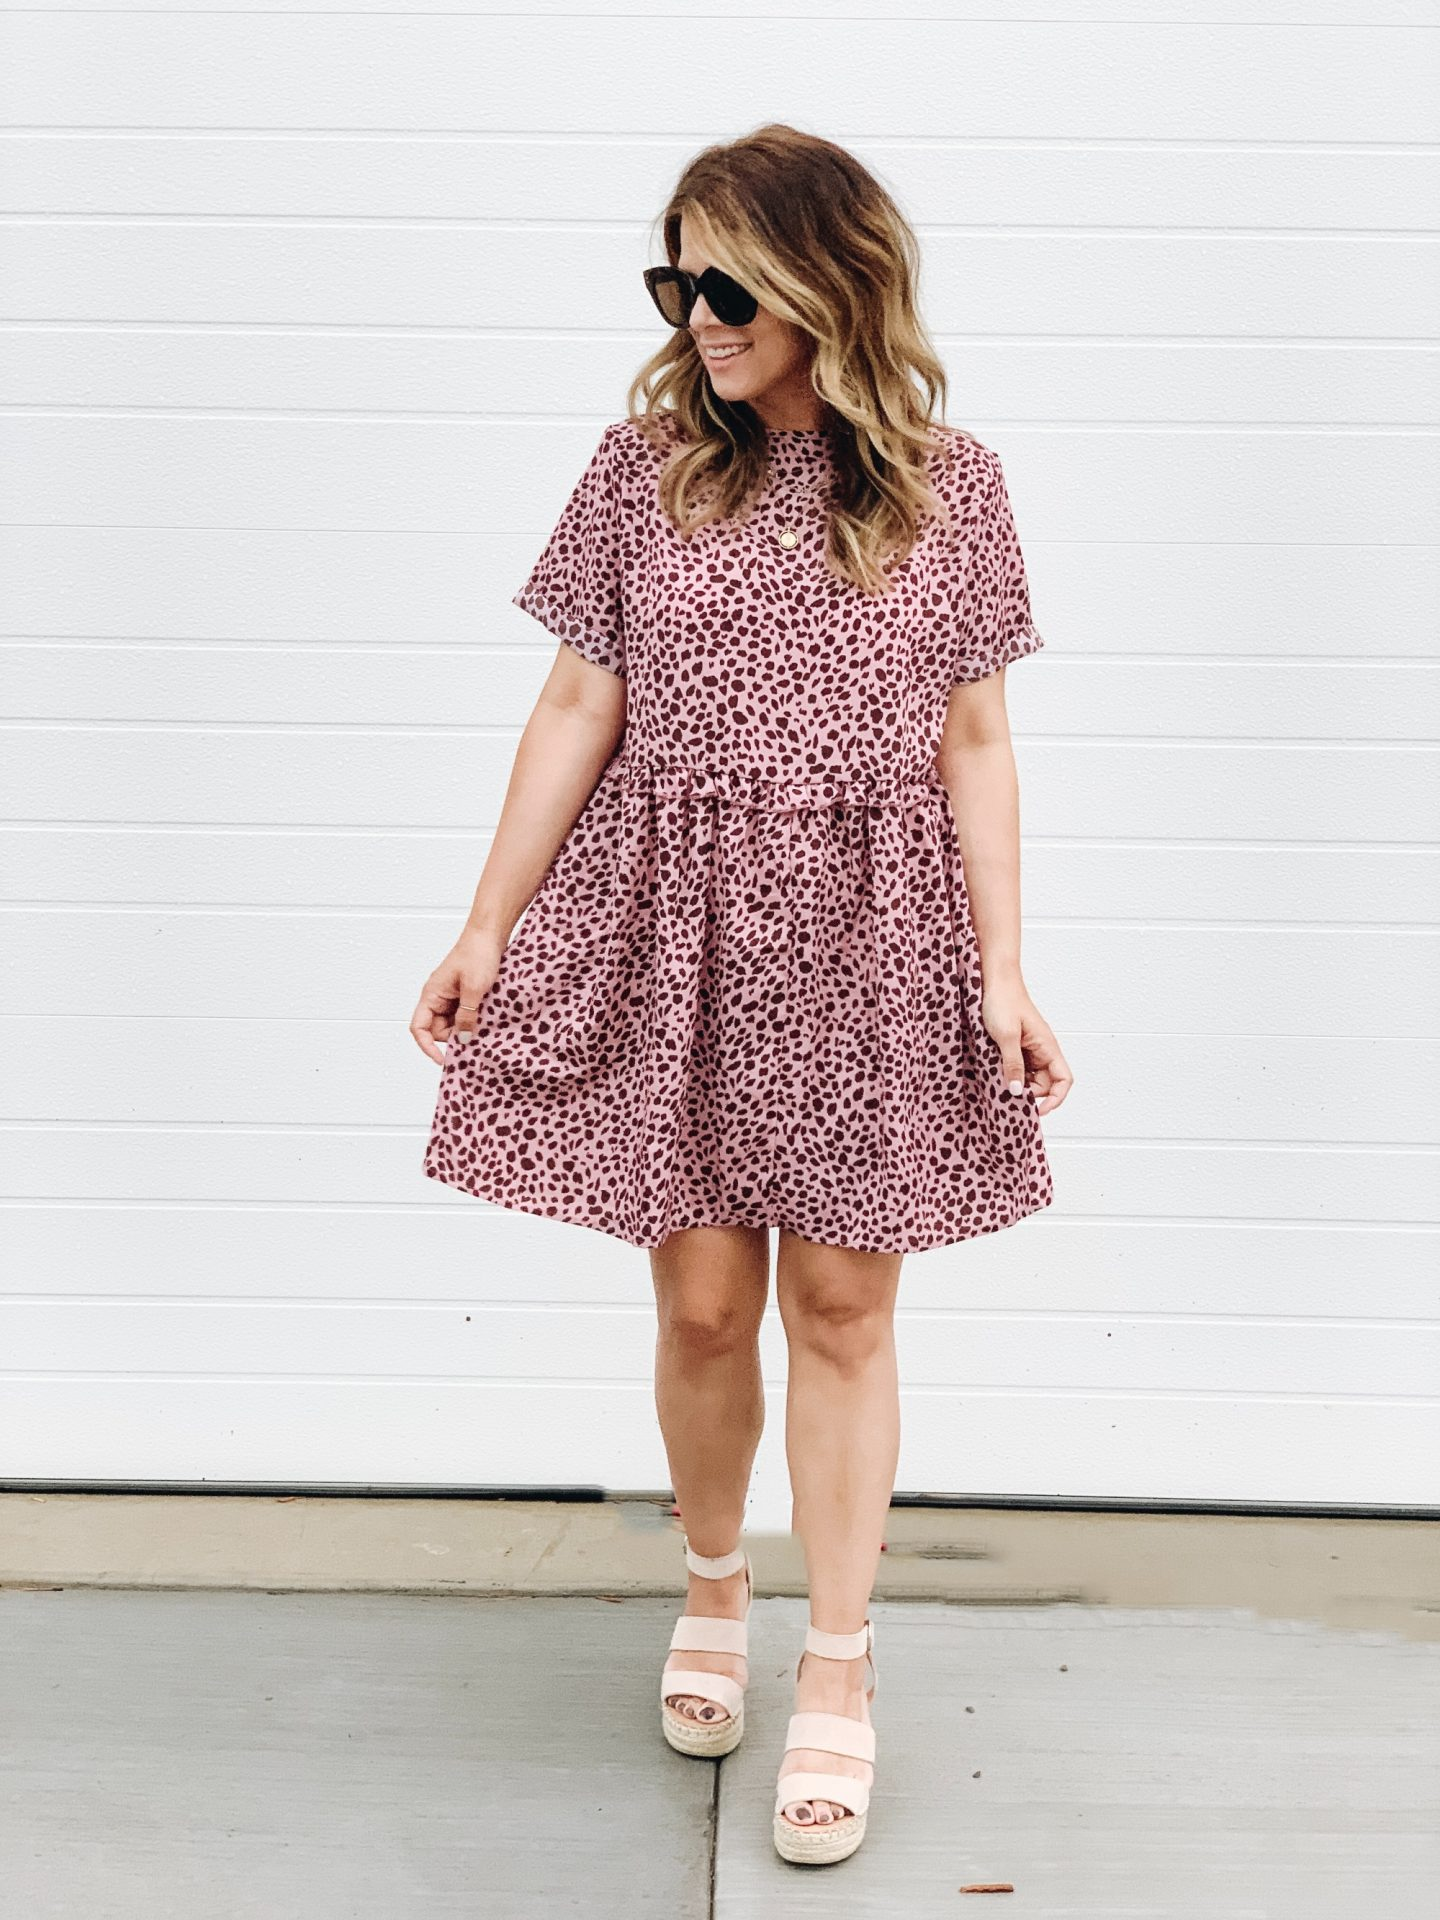 Summer Style, DSW, Amazon Fashion, Pink Mini dress, Nude Wedges